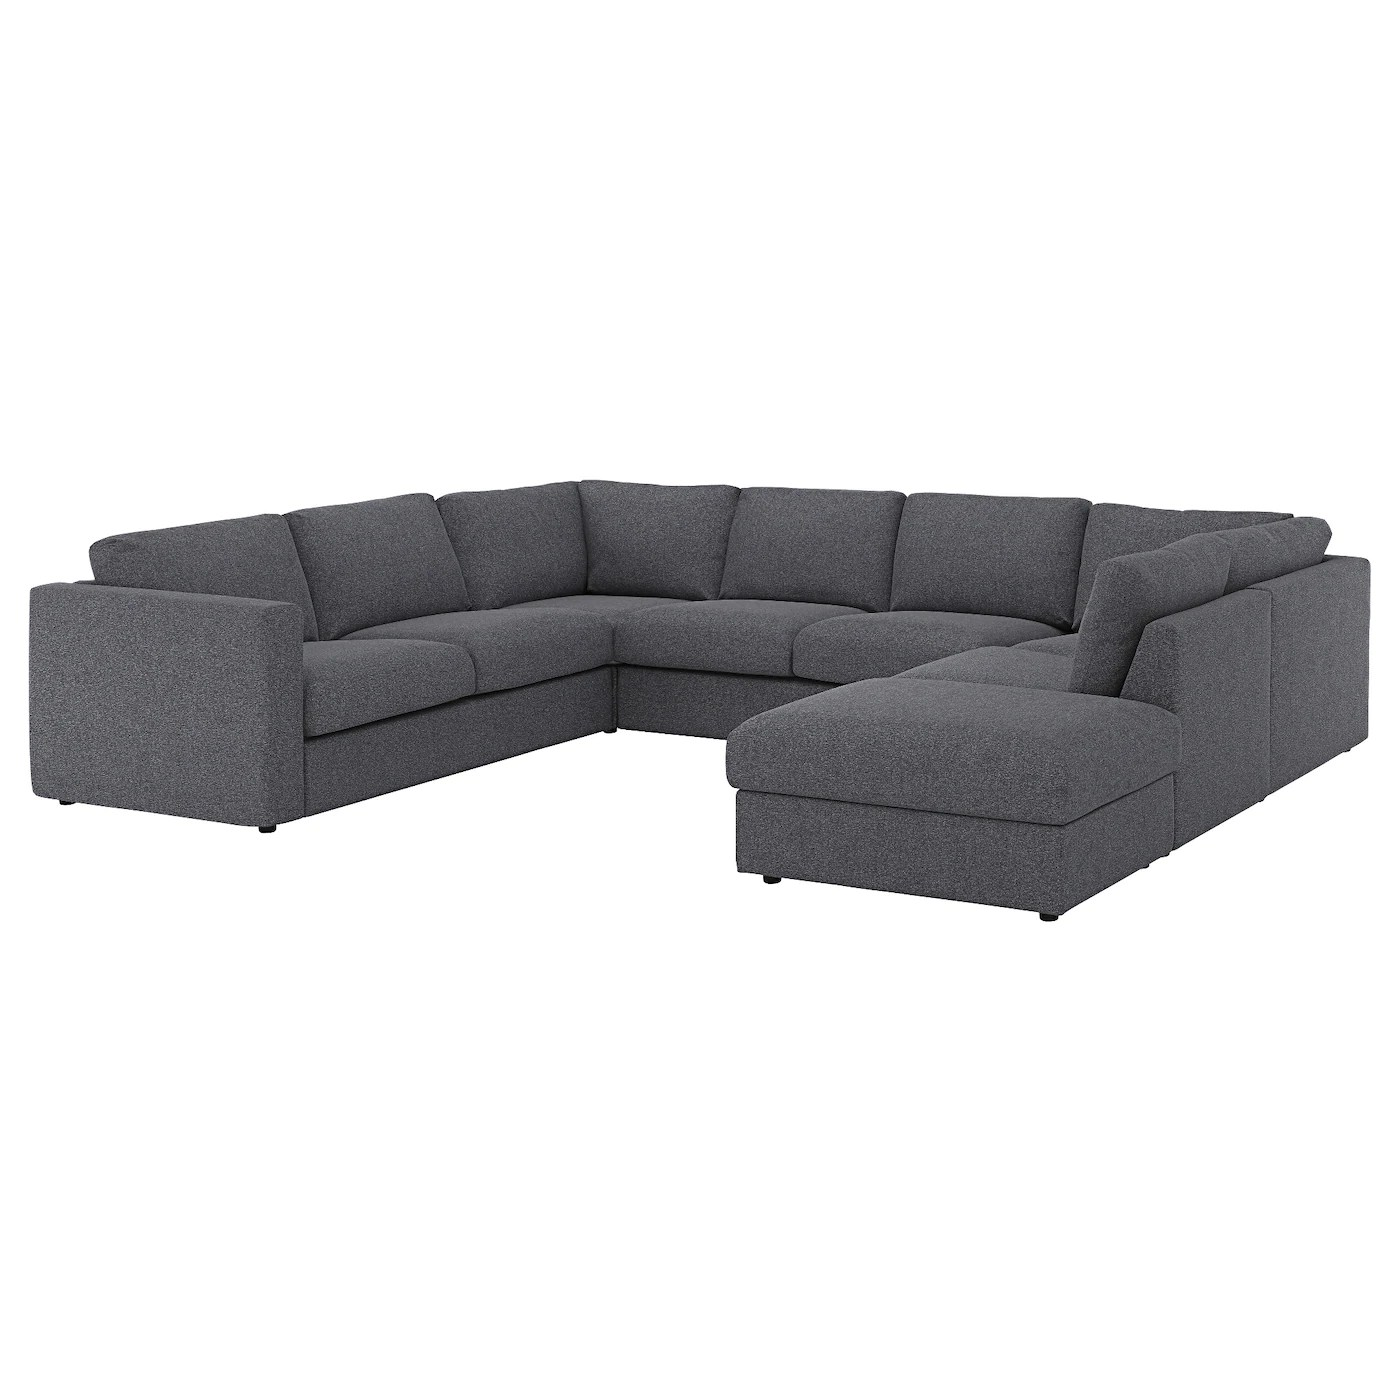 U Form Sofa Ikea Vimle U Shaped Sofa 6 Seat With Open End Gunnared Medium